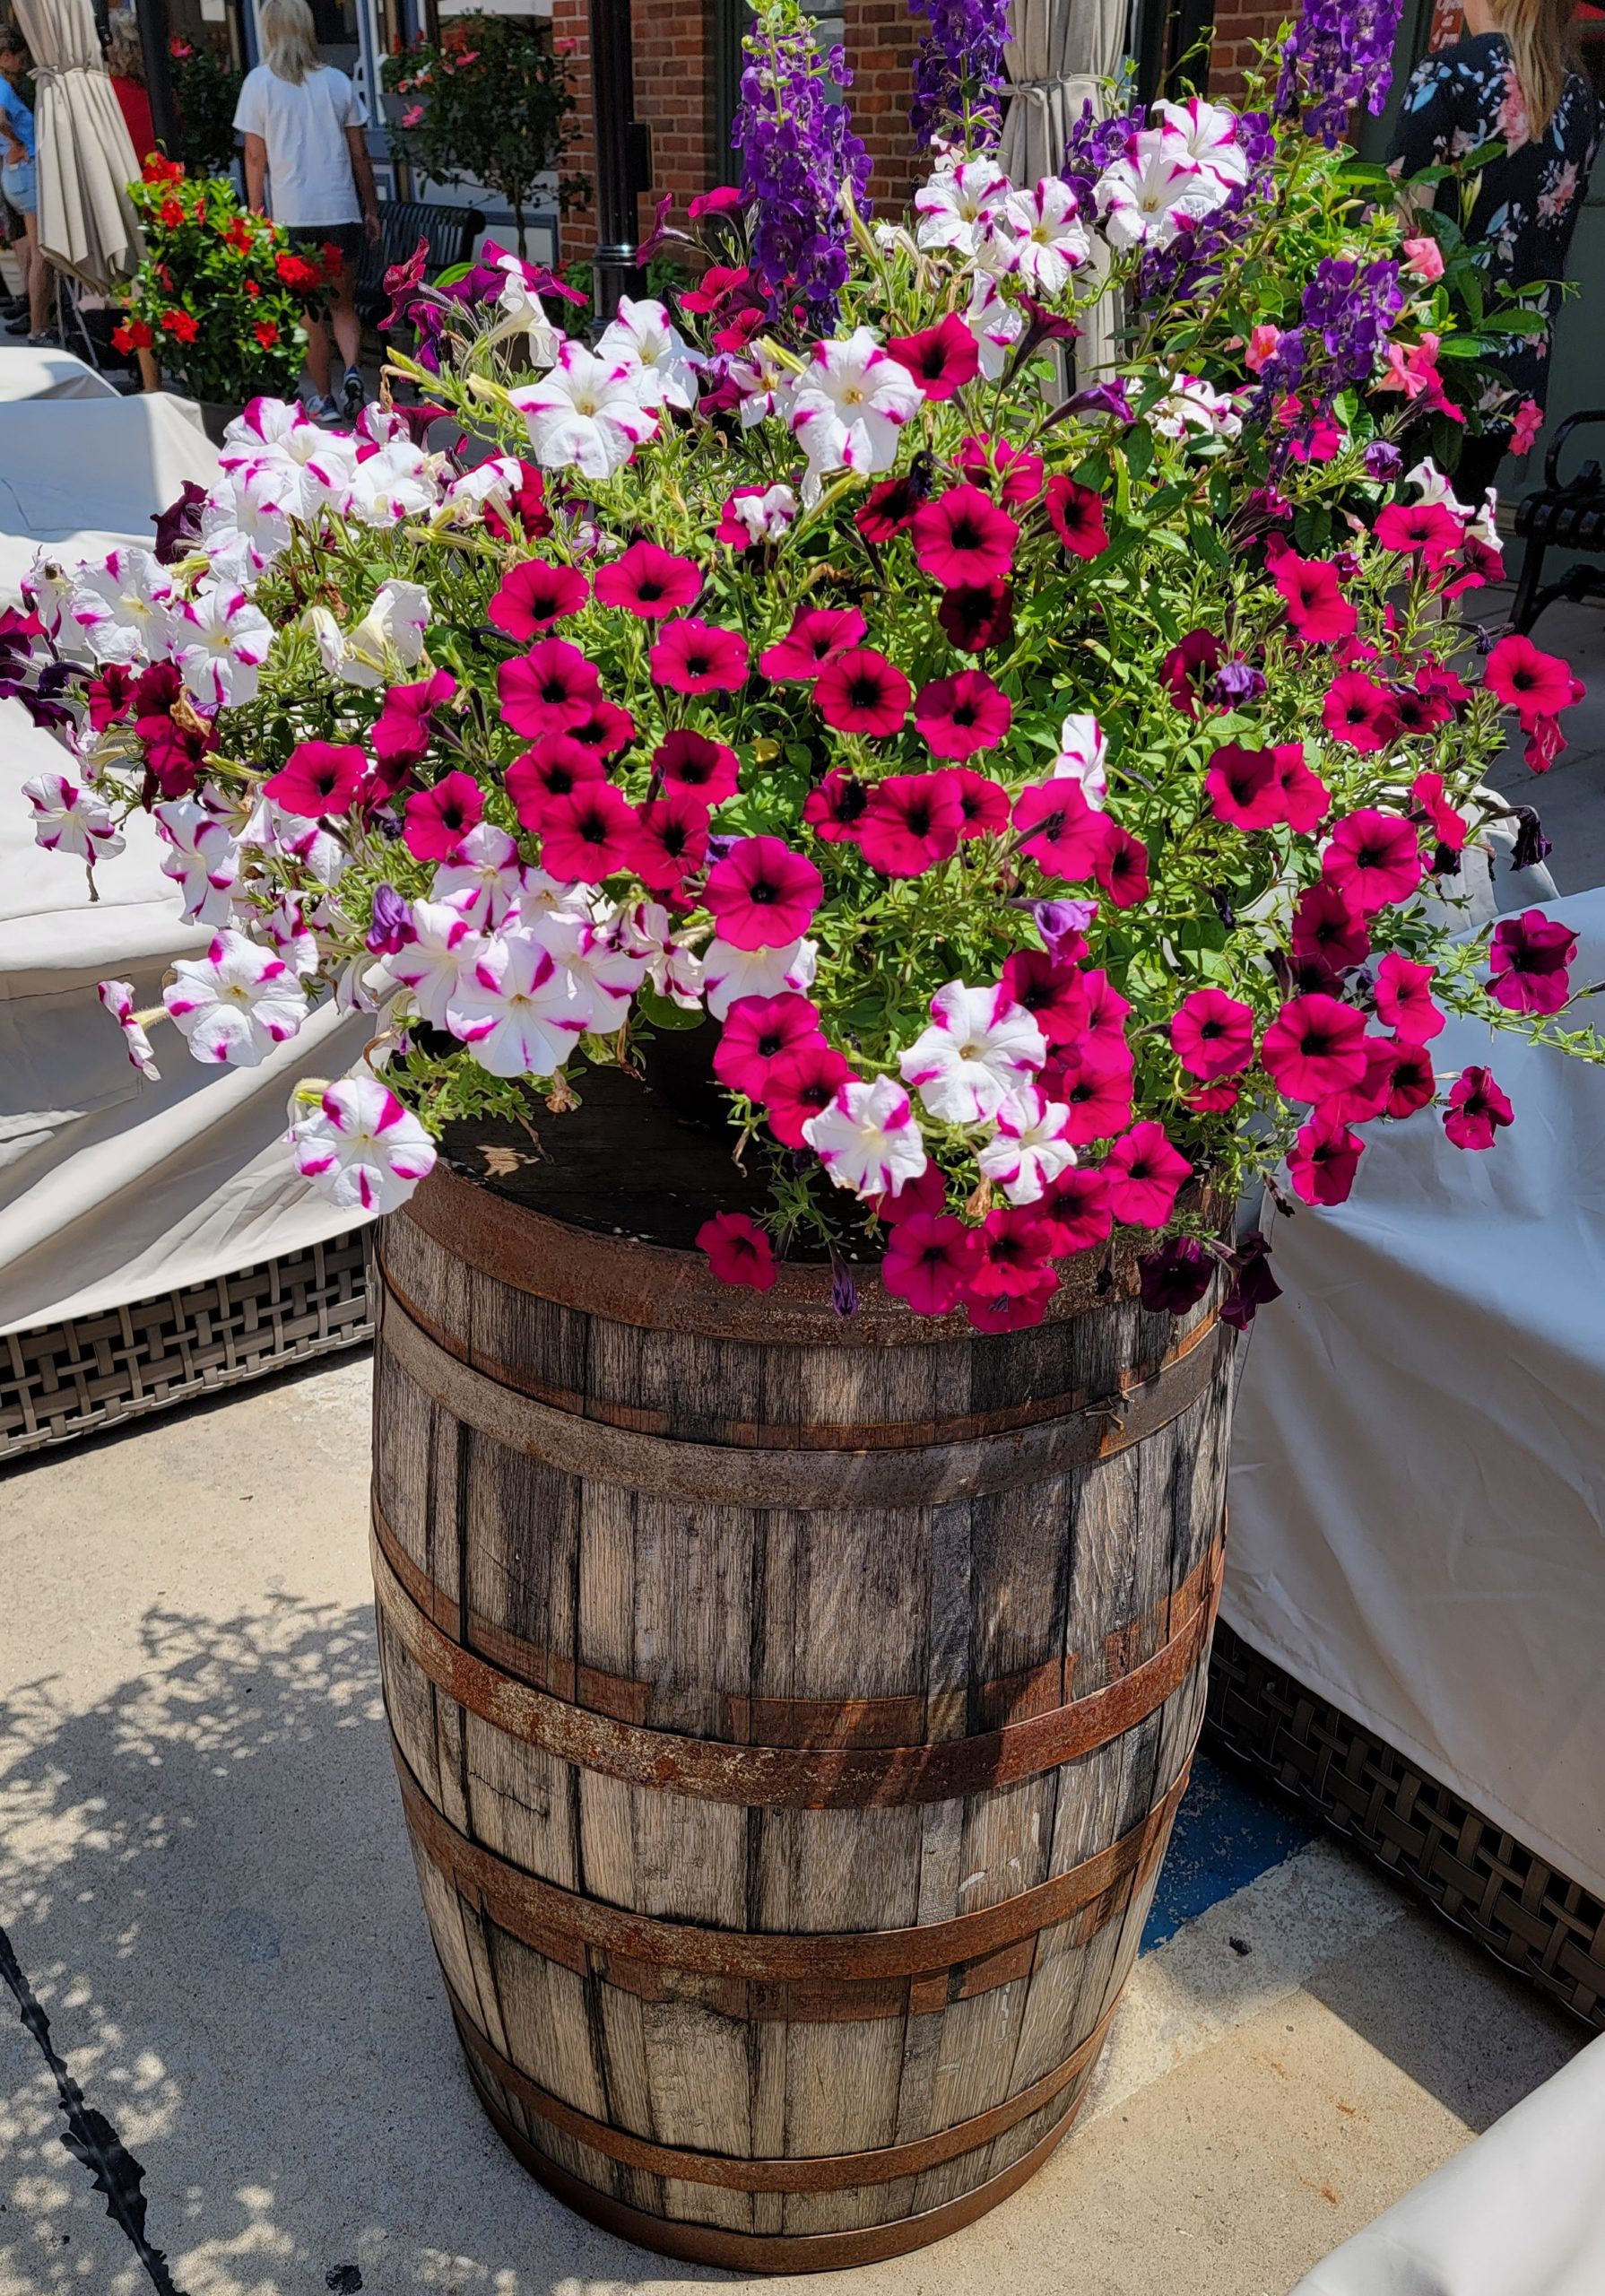 Whiskey Barrel with Flowers. 7.2021